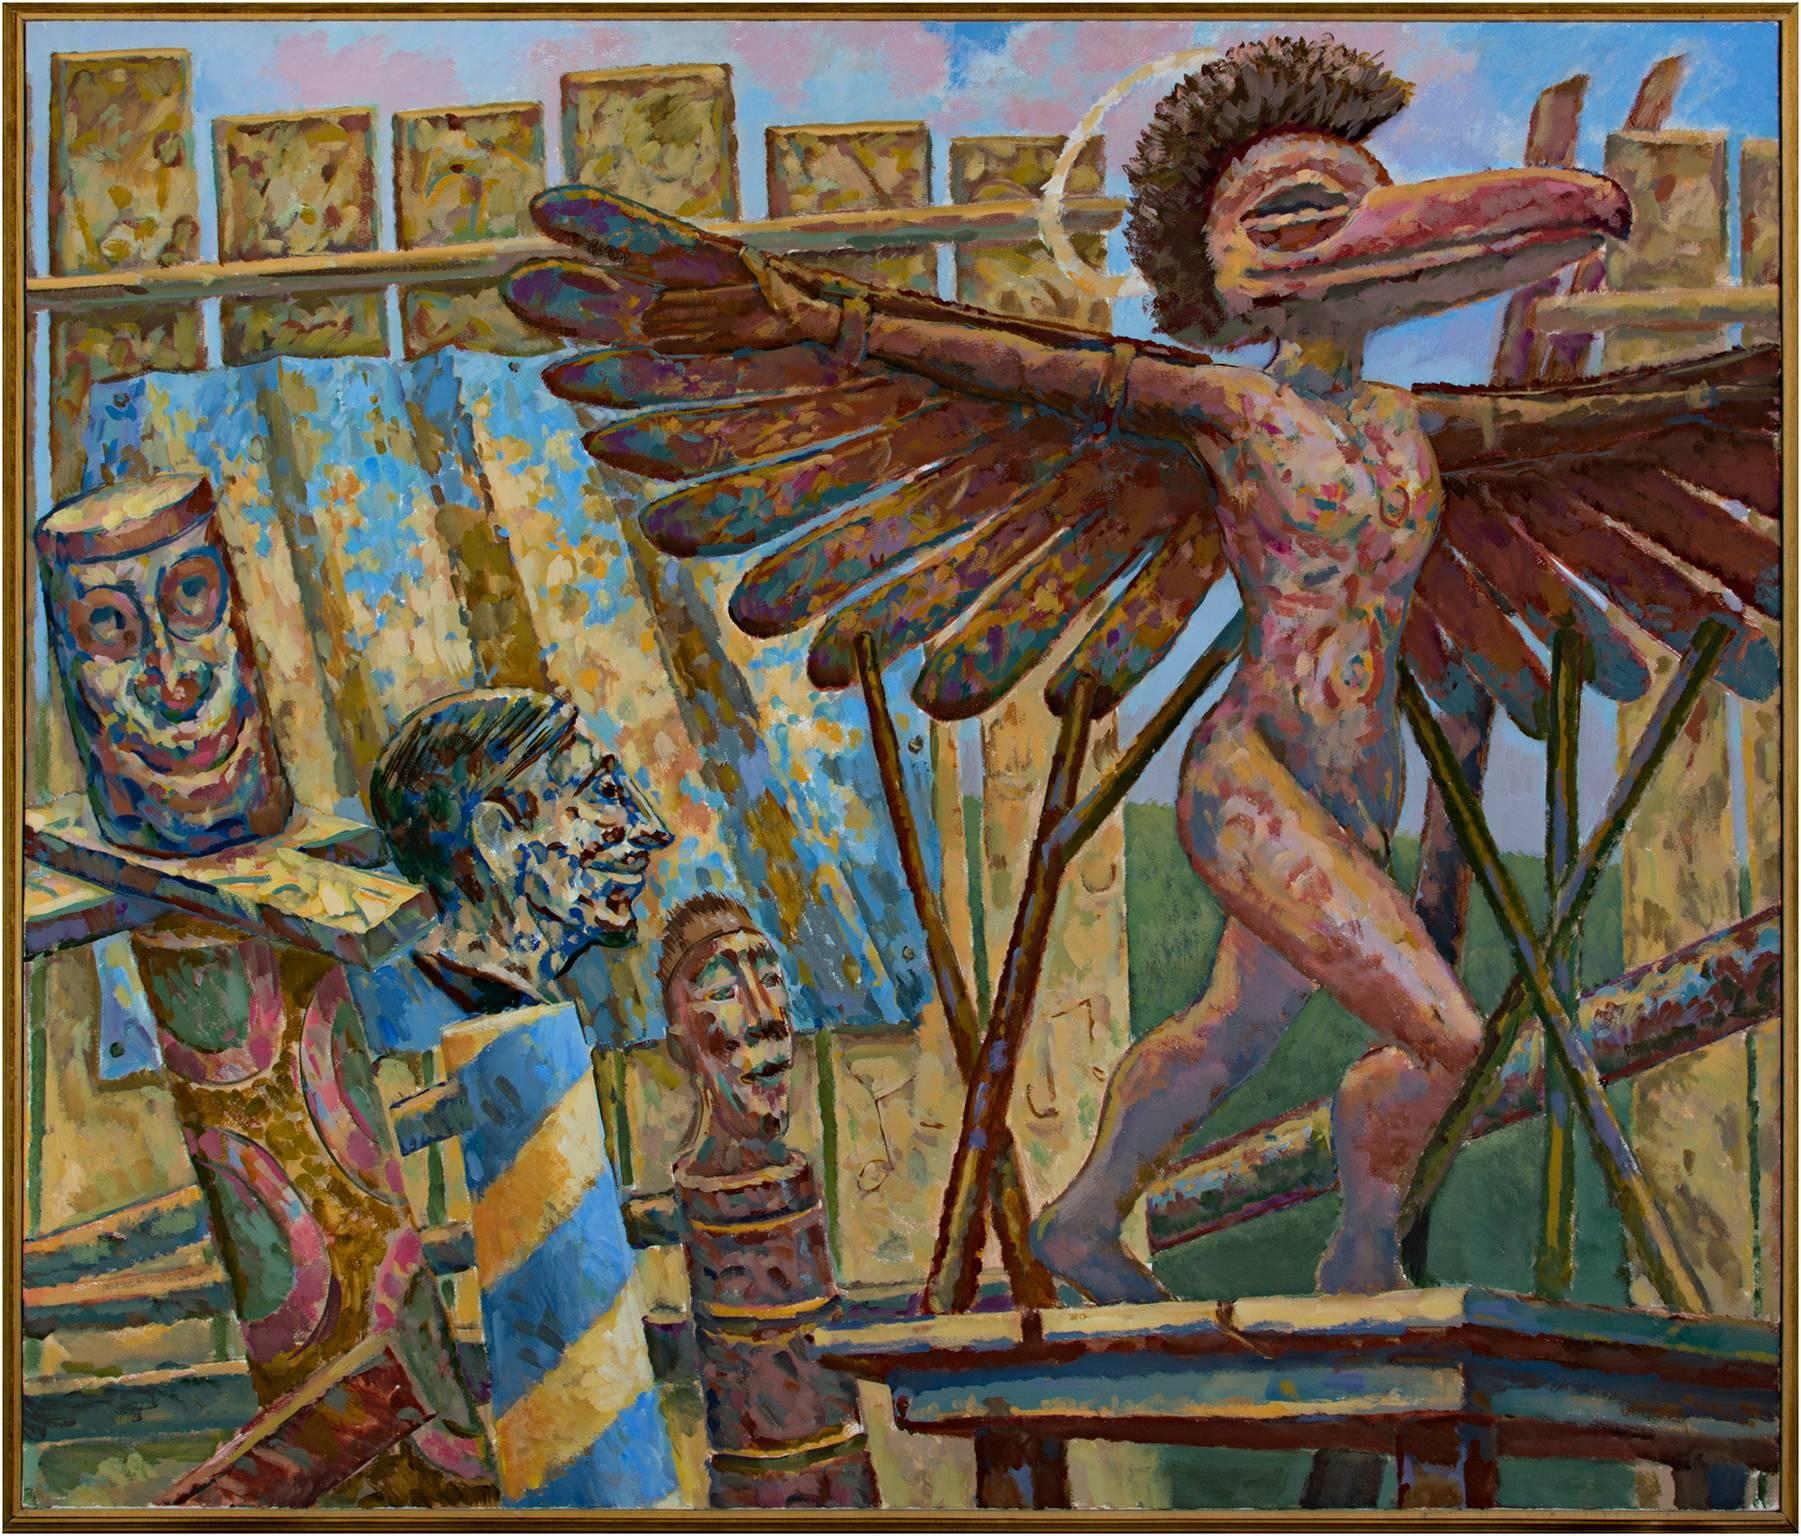 """""""St. Icaremus in the Lumber Yard,"""" Acrylic on Canvas by Randall Berndt"""